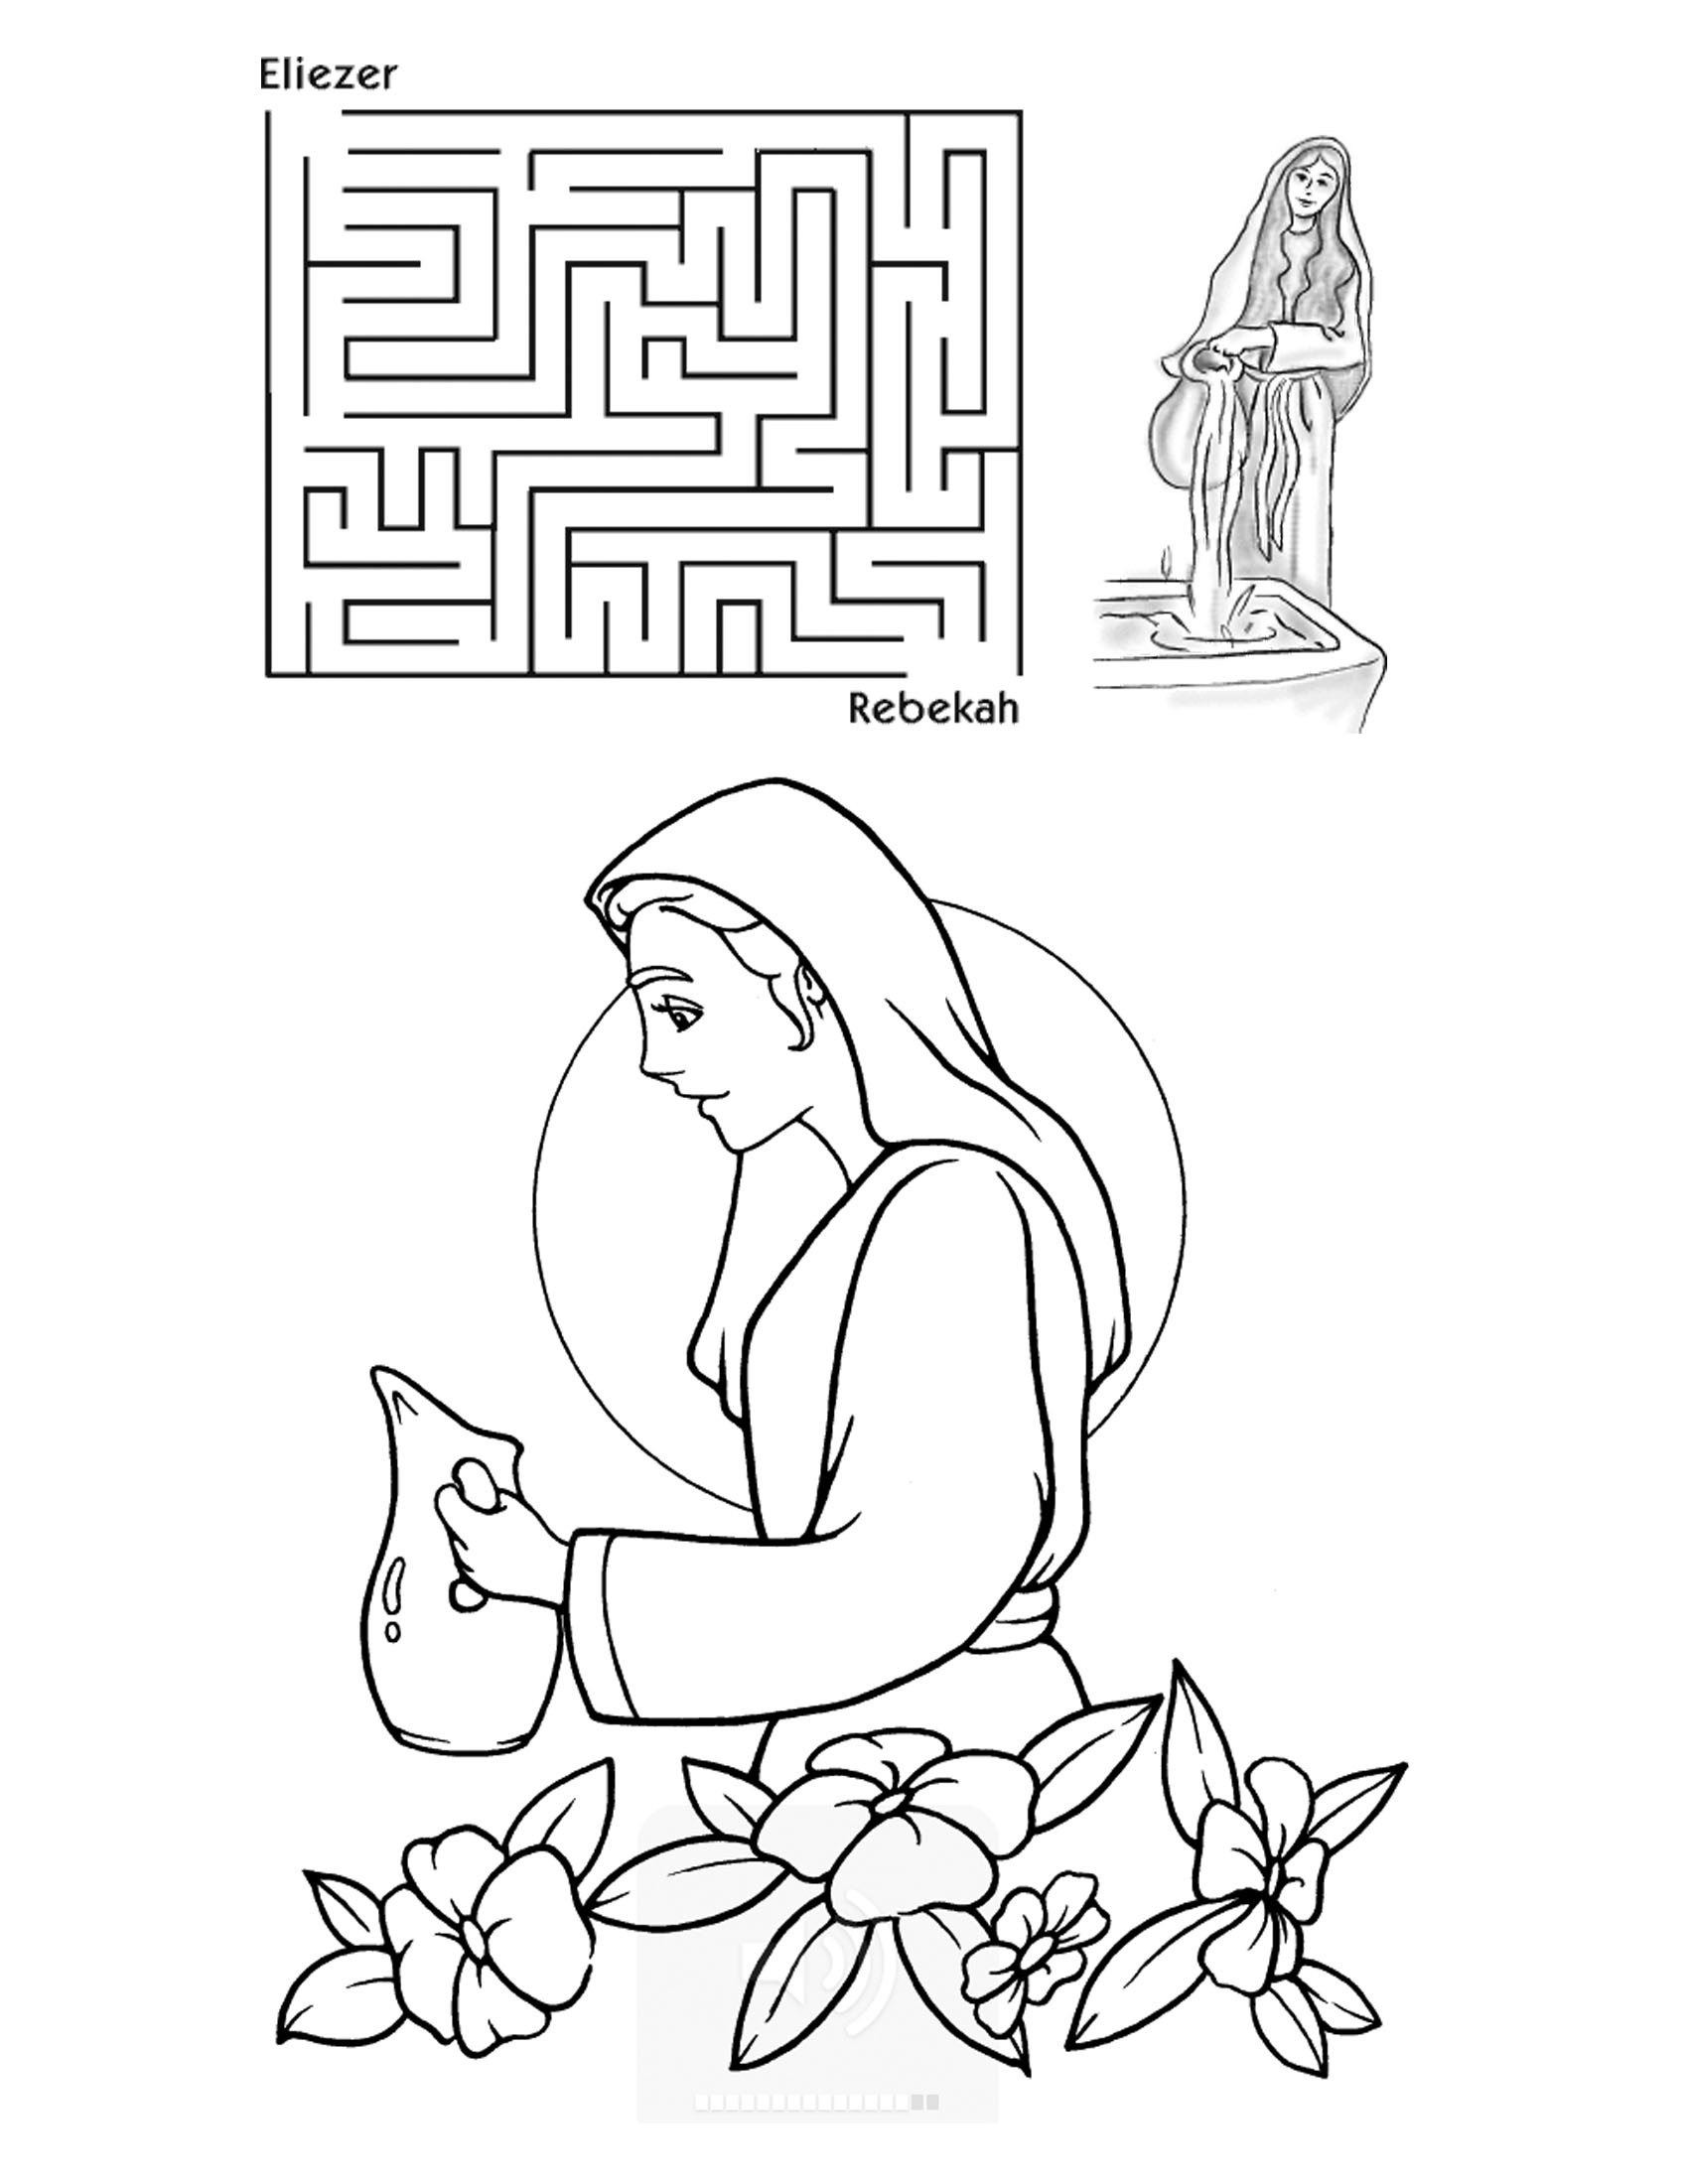 isaac and rebekah coloring pages isaac and rebekah coloring page at getdrawings free download rebekah coloring pages isaac and